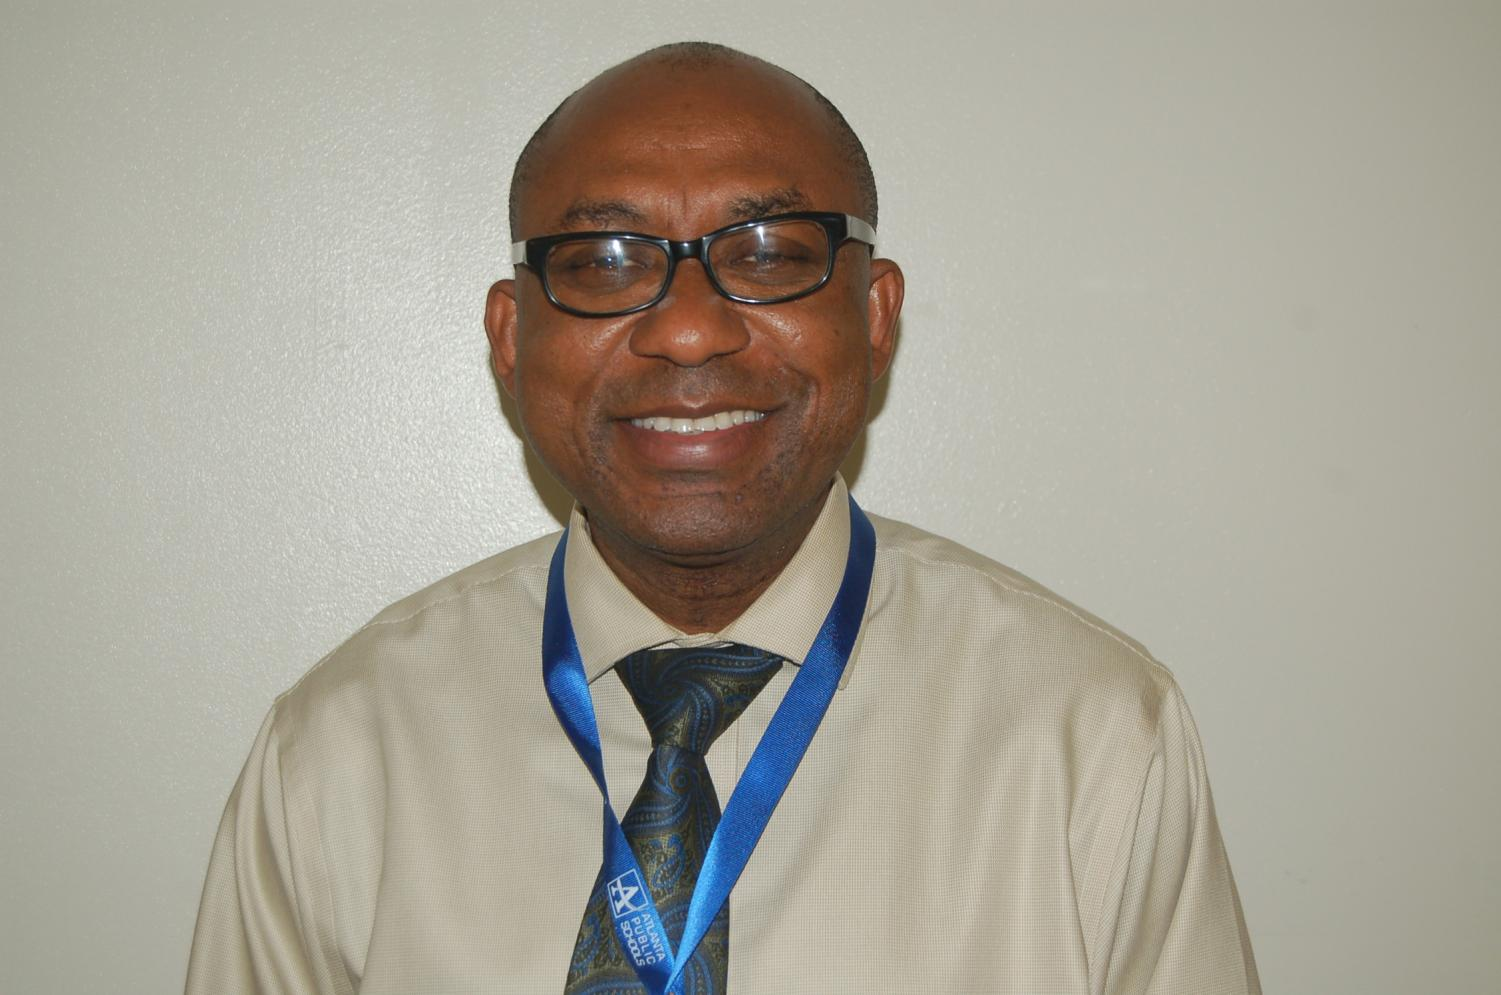 Mr. Okeh, originally from Nigeria, now teaches in the science department at Grady.